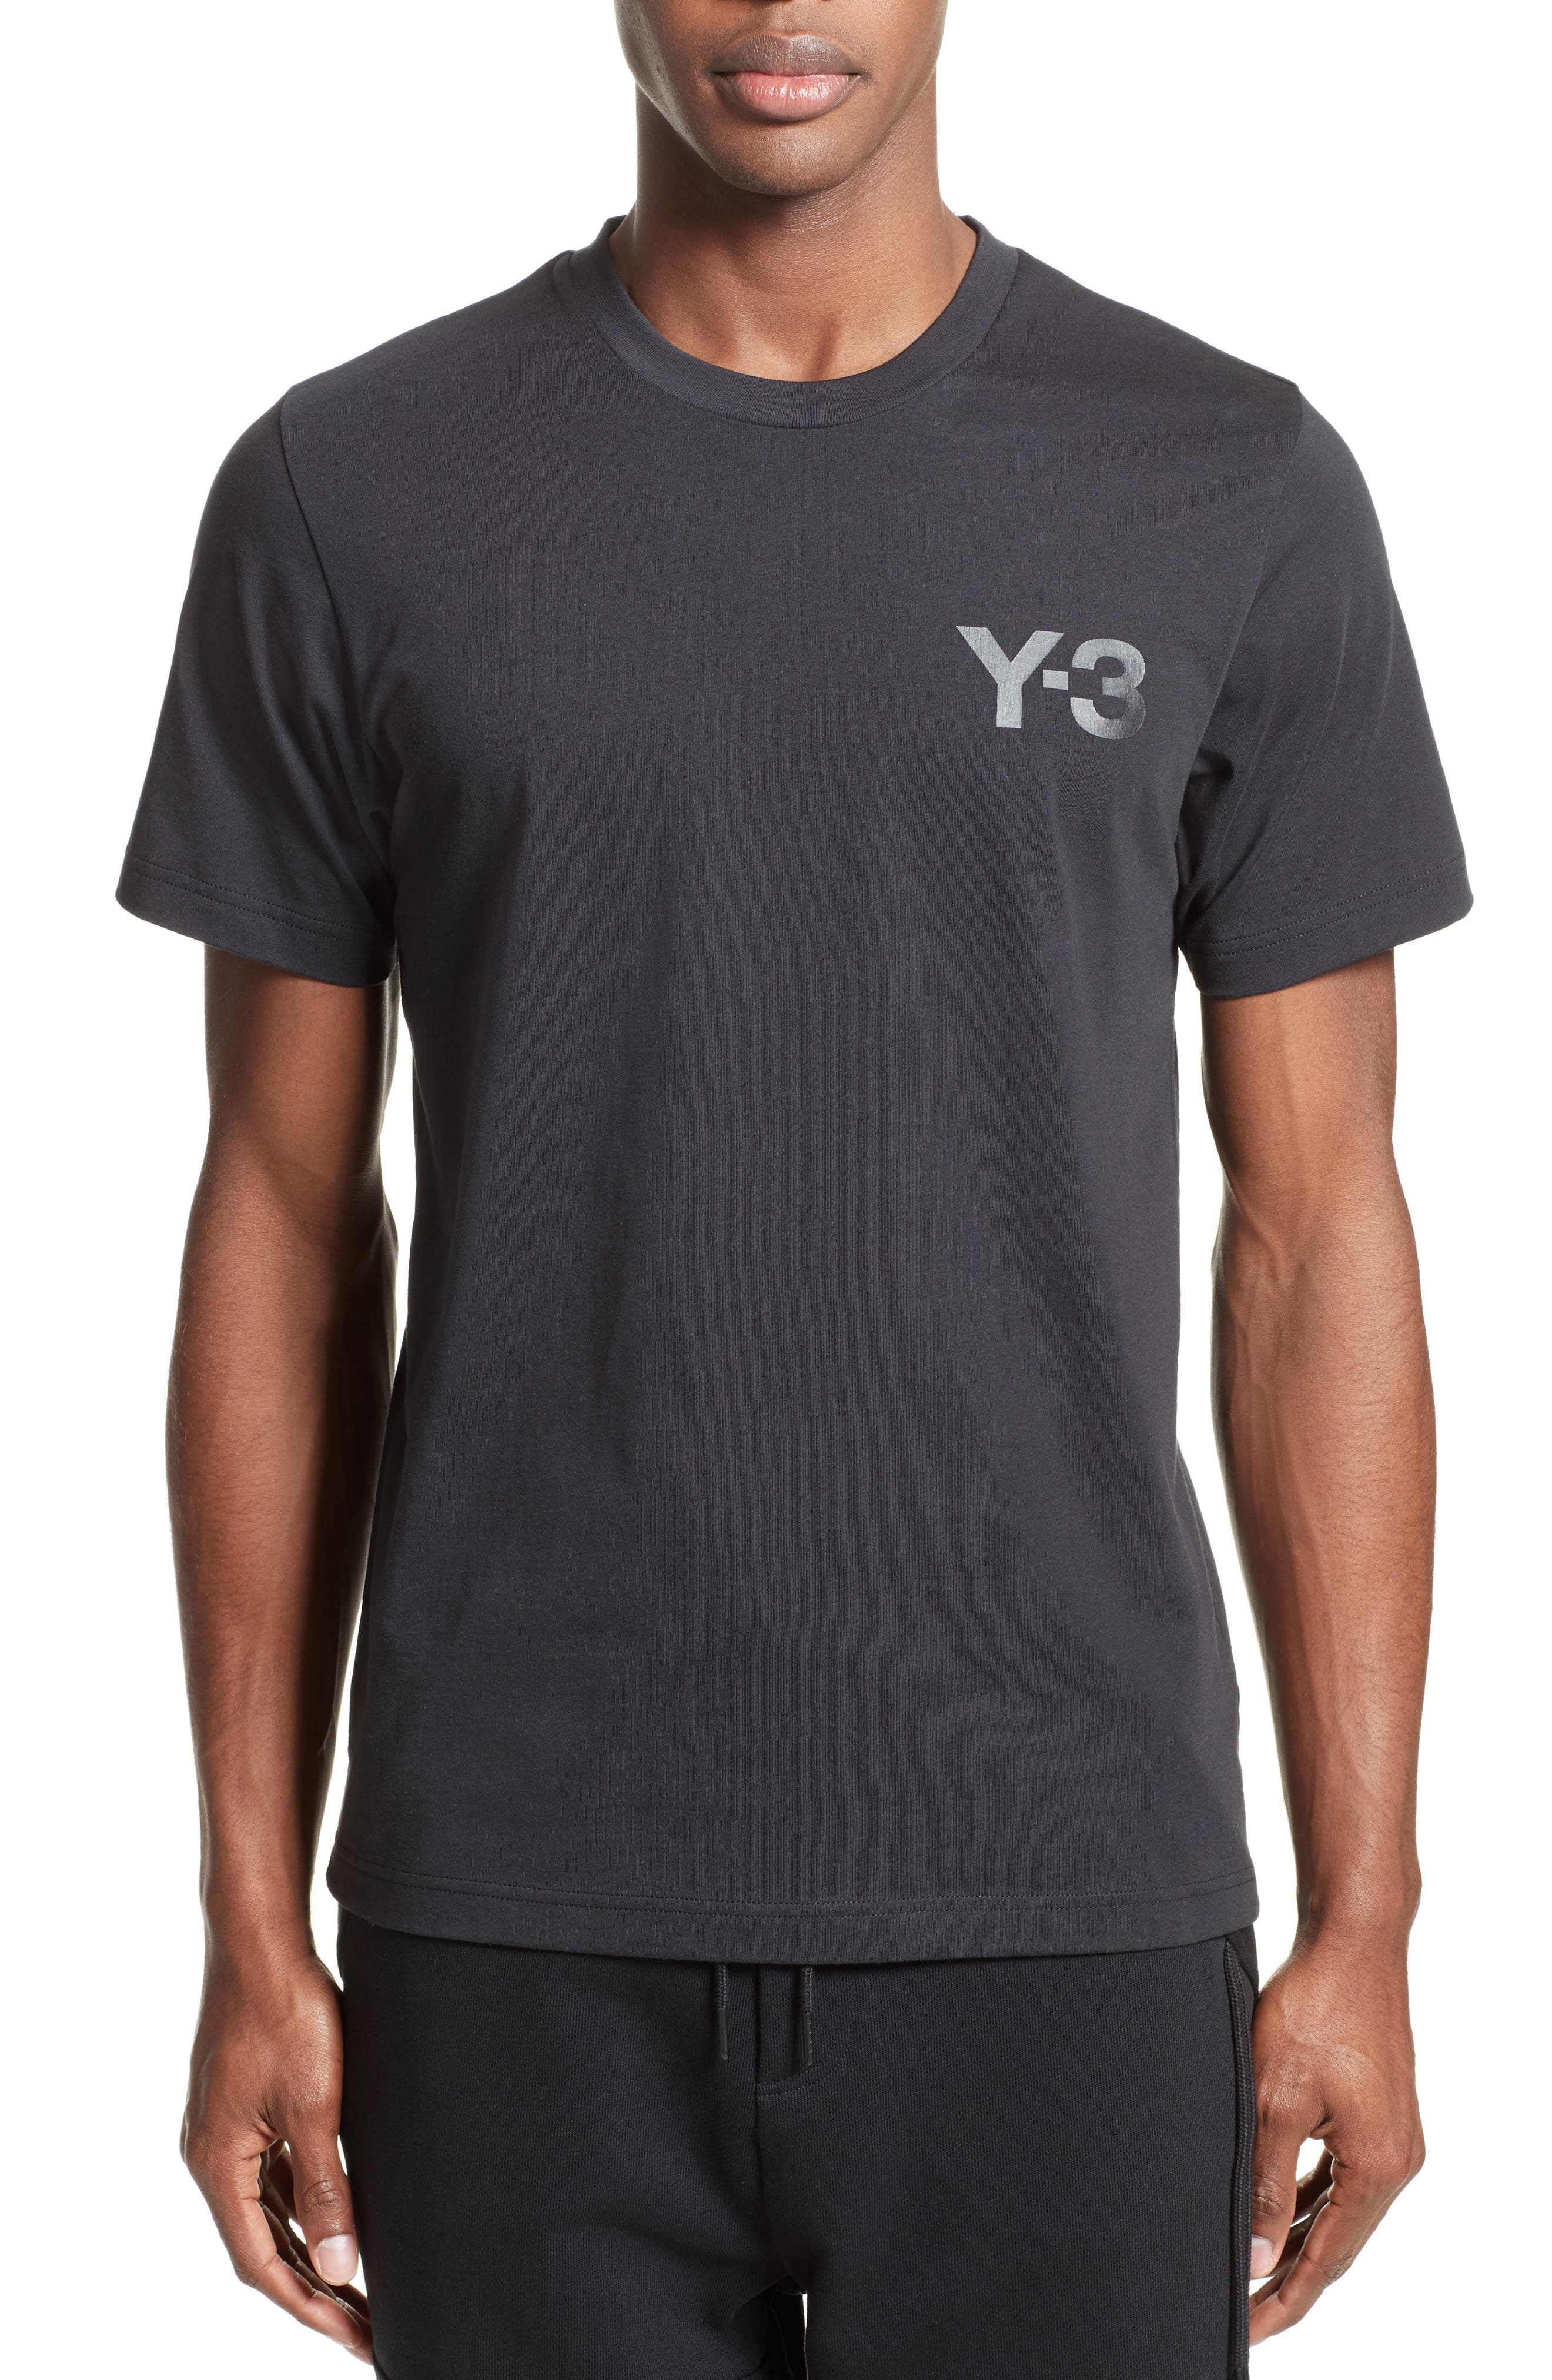 Y-3 Logo Graphic T-Shirt